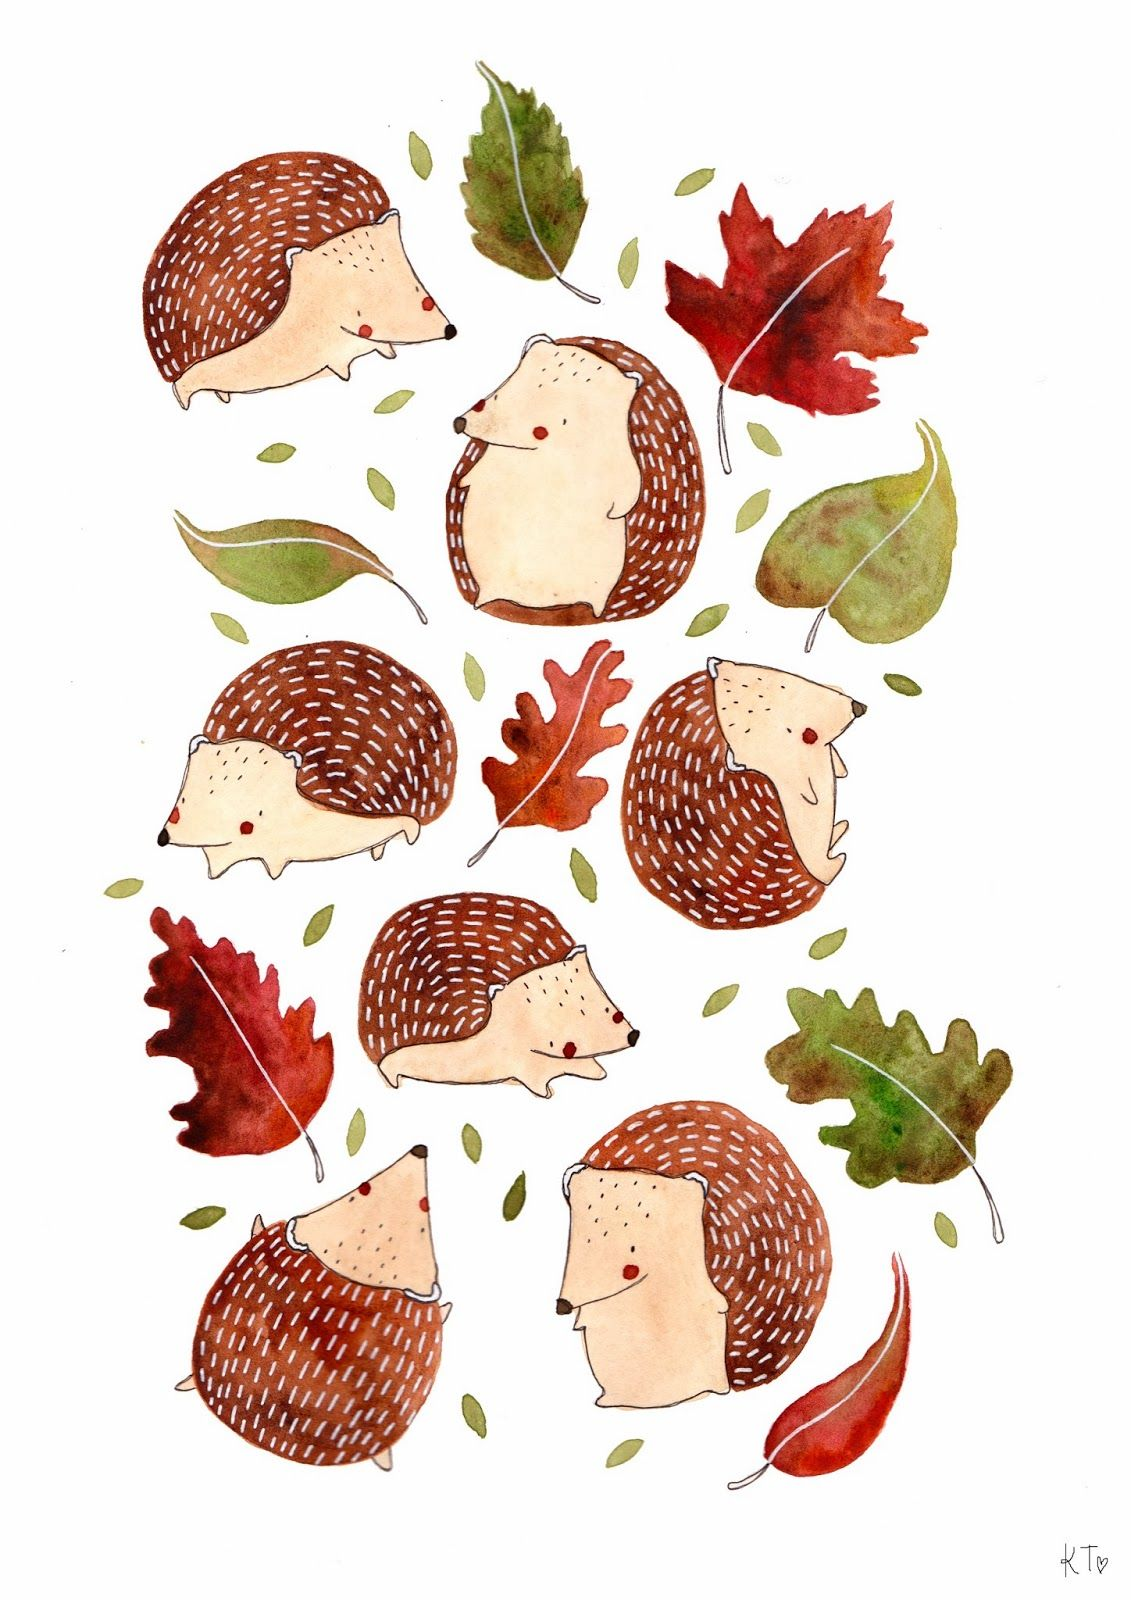 Hedgehog and Leaves by Katie Lou